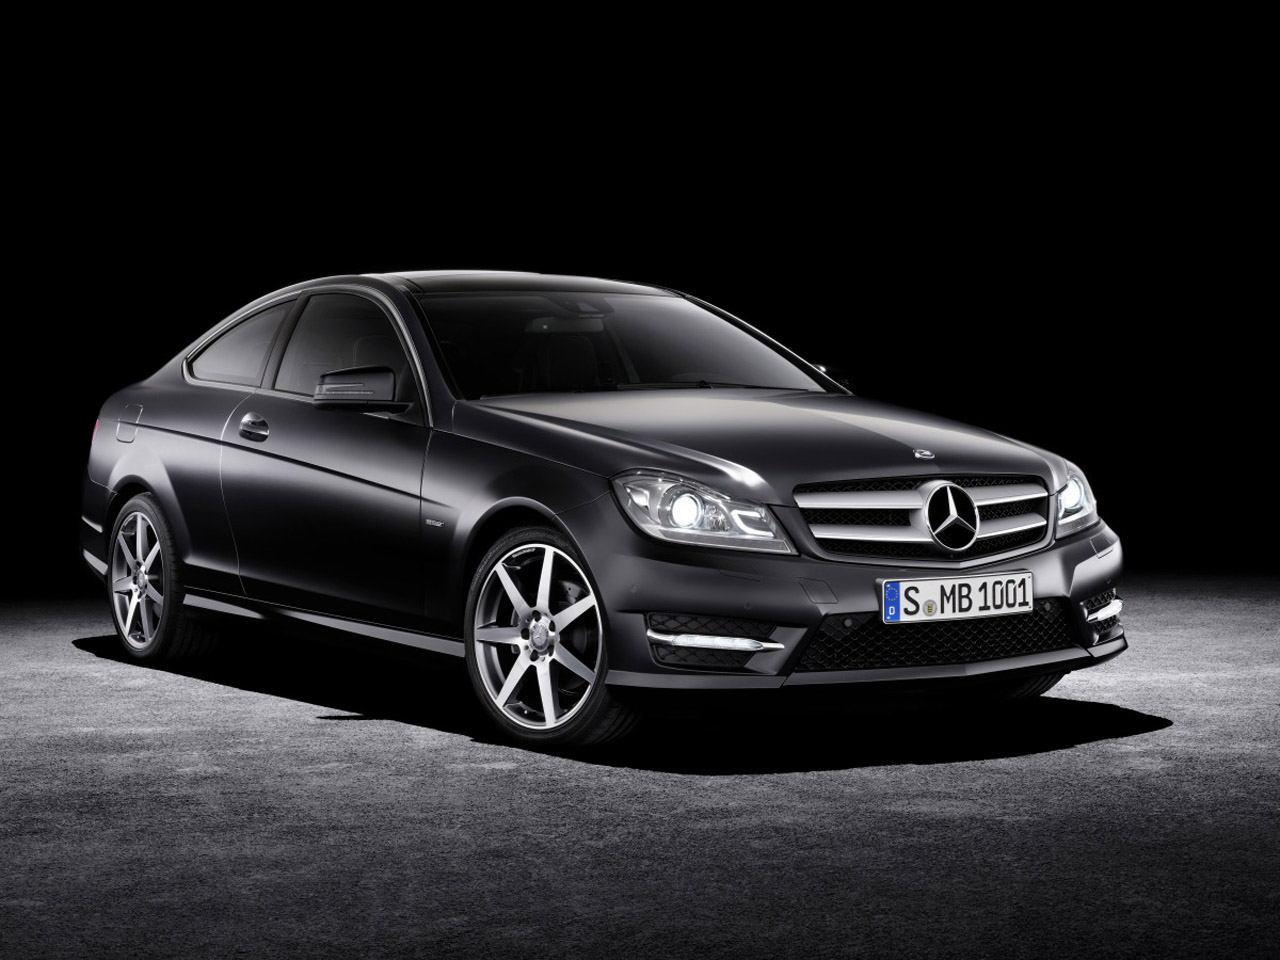 Automotive news 2012 mercedes benz c class c350 coupe review for Benz mercedes c class